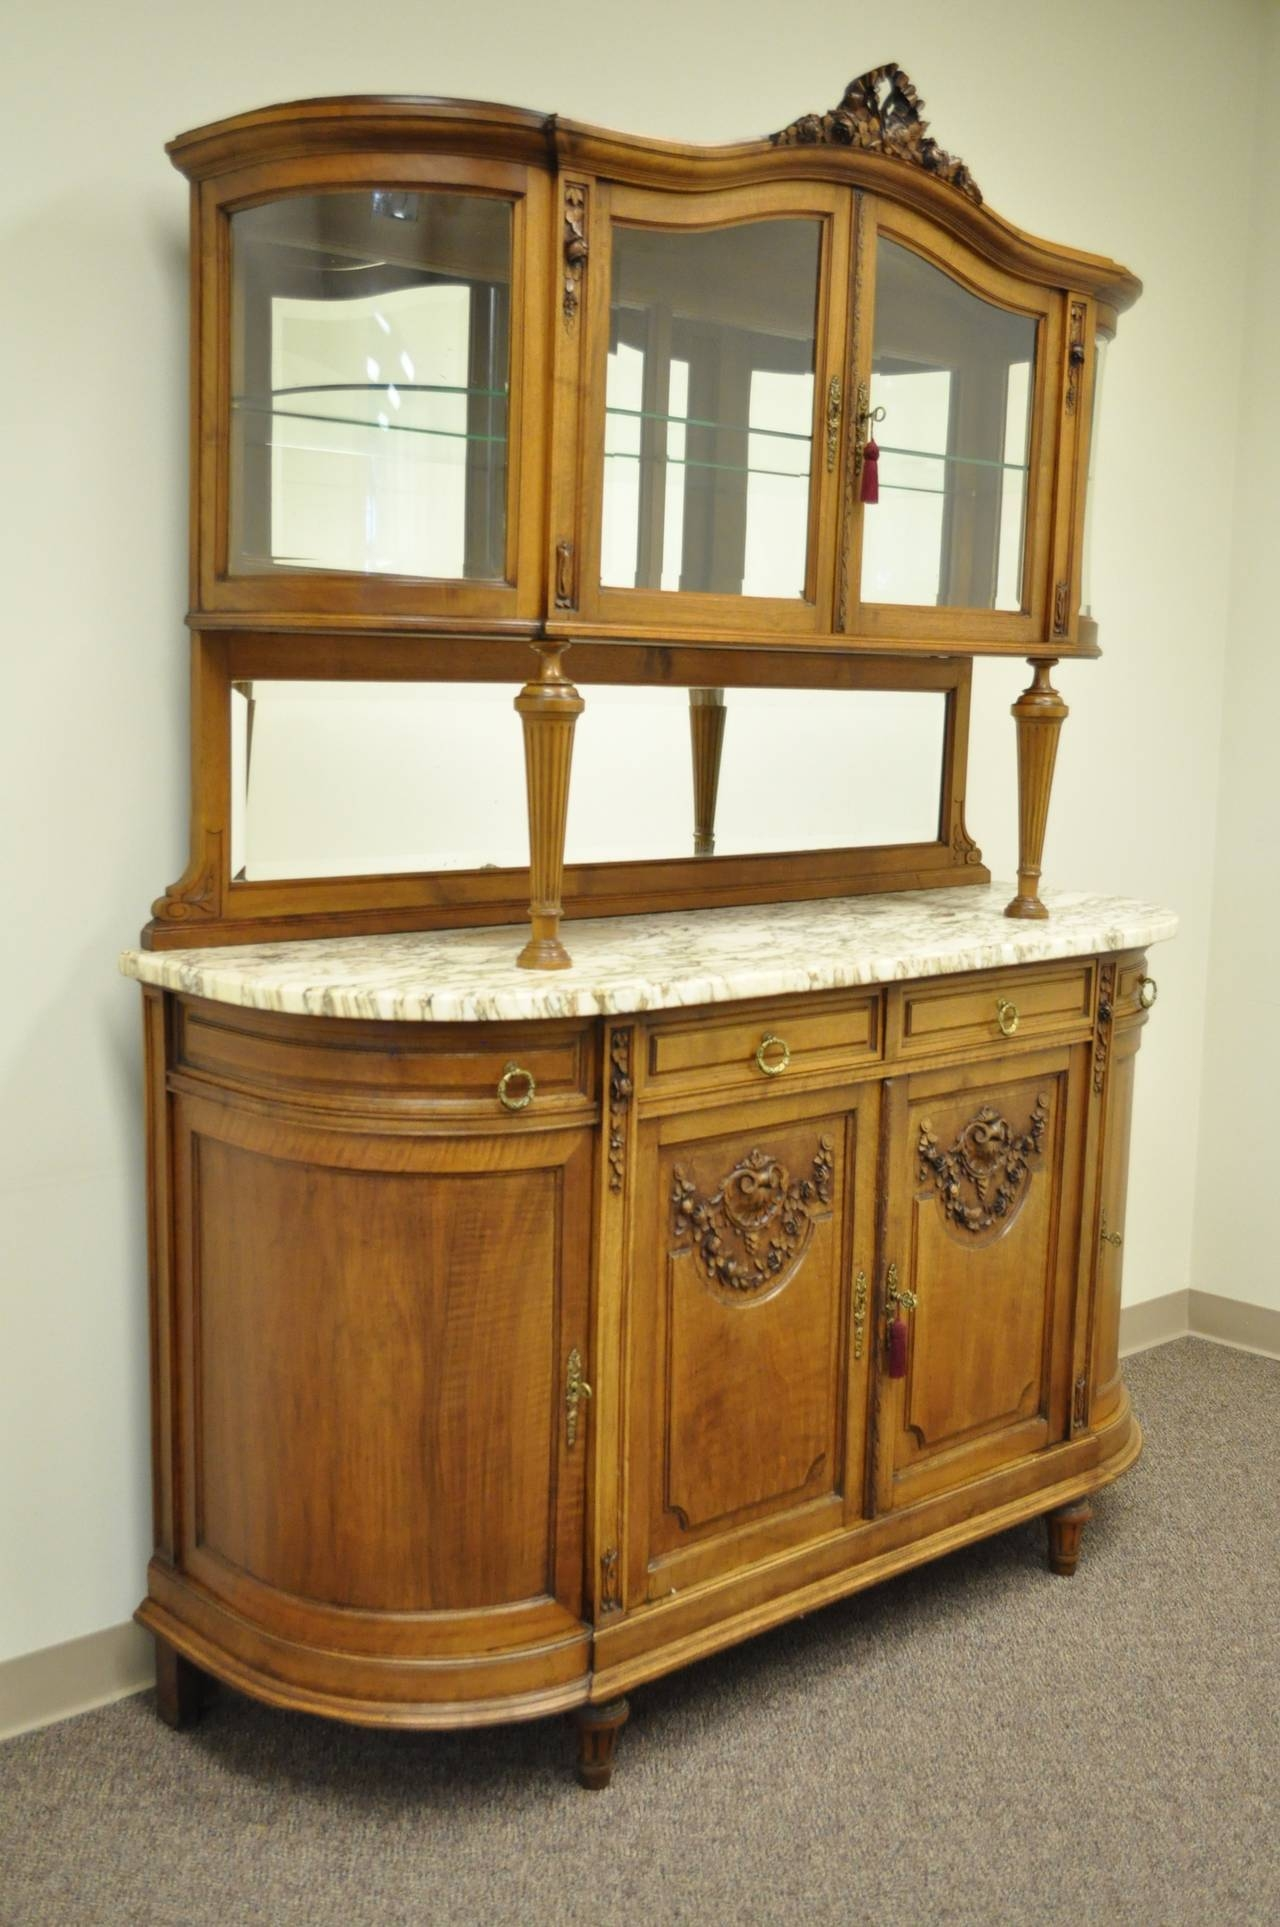 French Louis Xvi Style Marble Top Sideboard Or Curio Cabinet With Regard To Sideboards With Marble Tops (View 9 of 15)